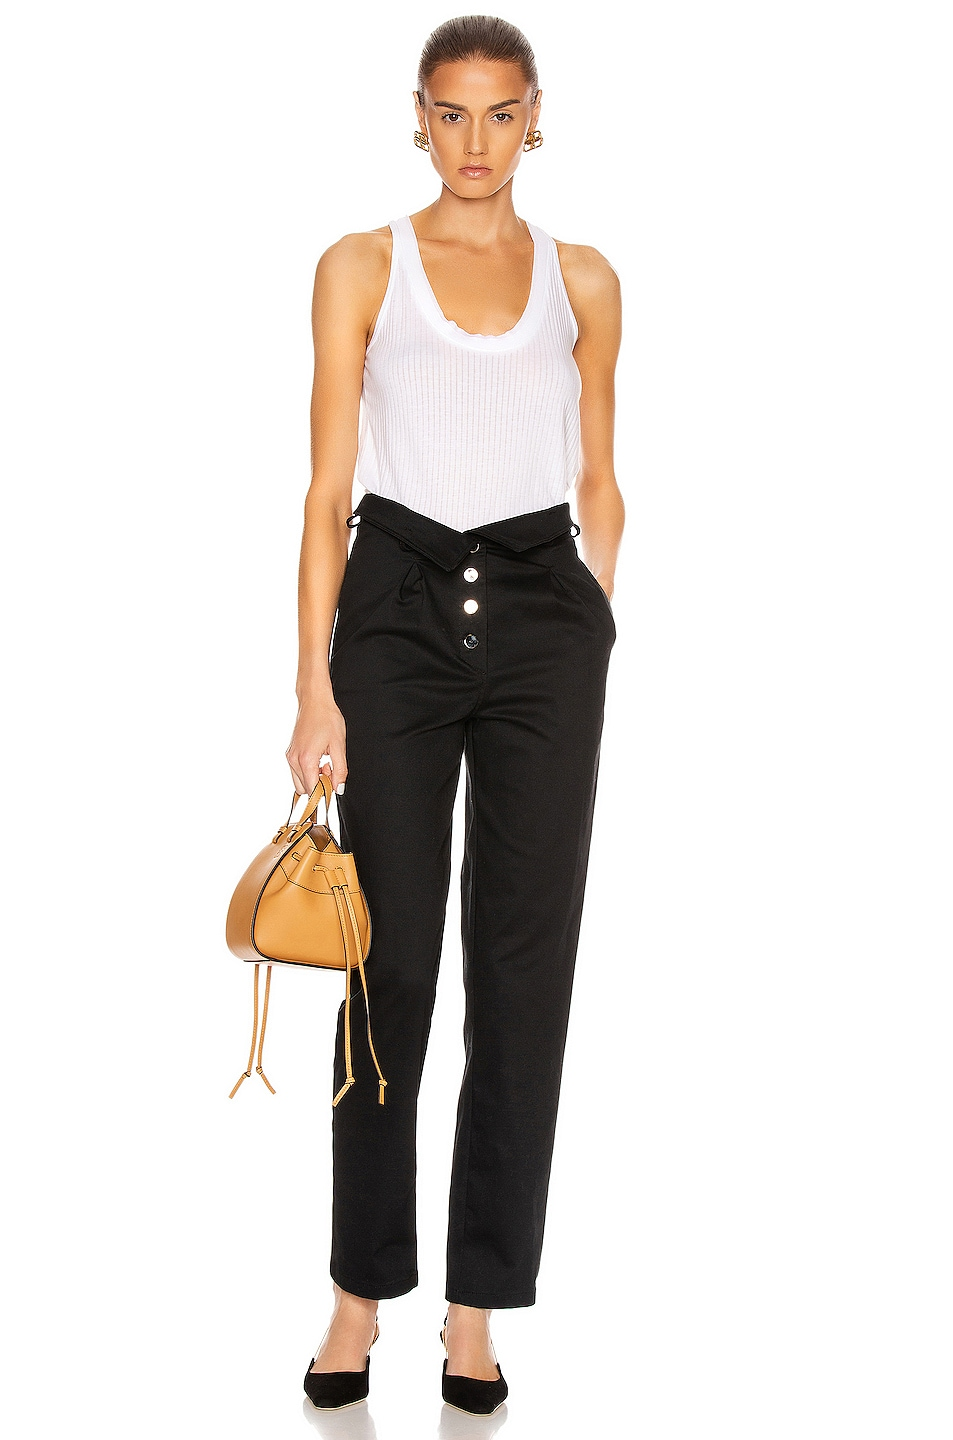 Image 5 of The Range Structured Twill Belted Paperbag Pants in Black